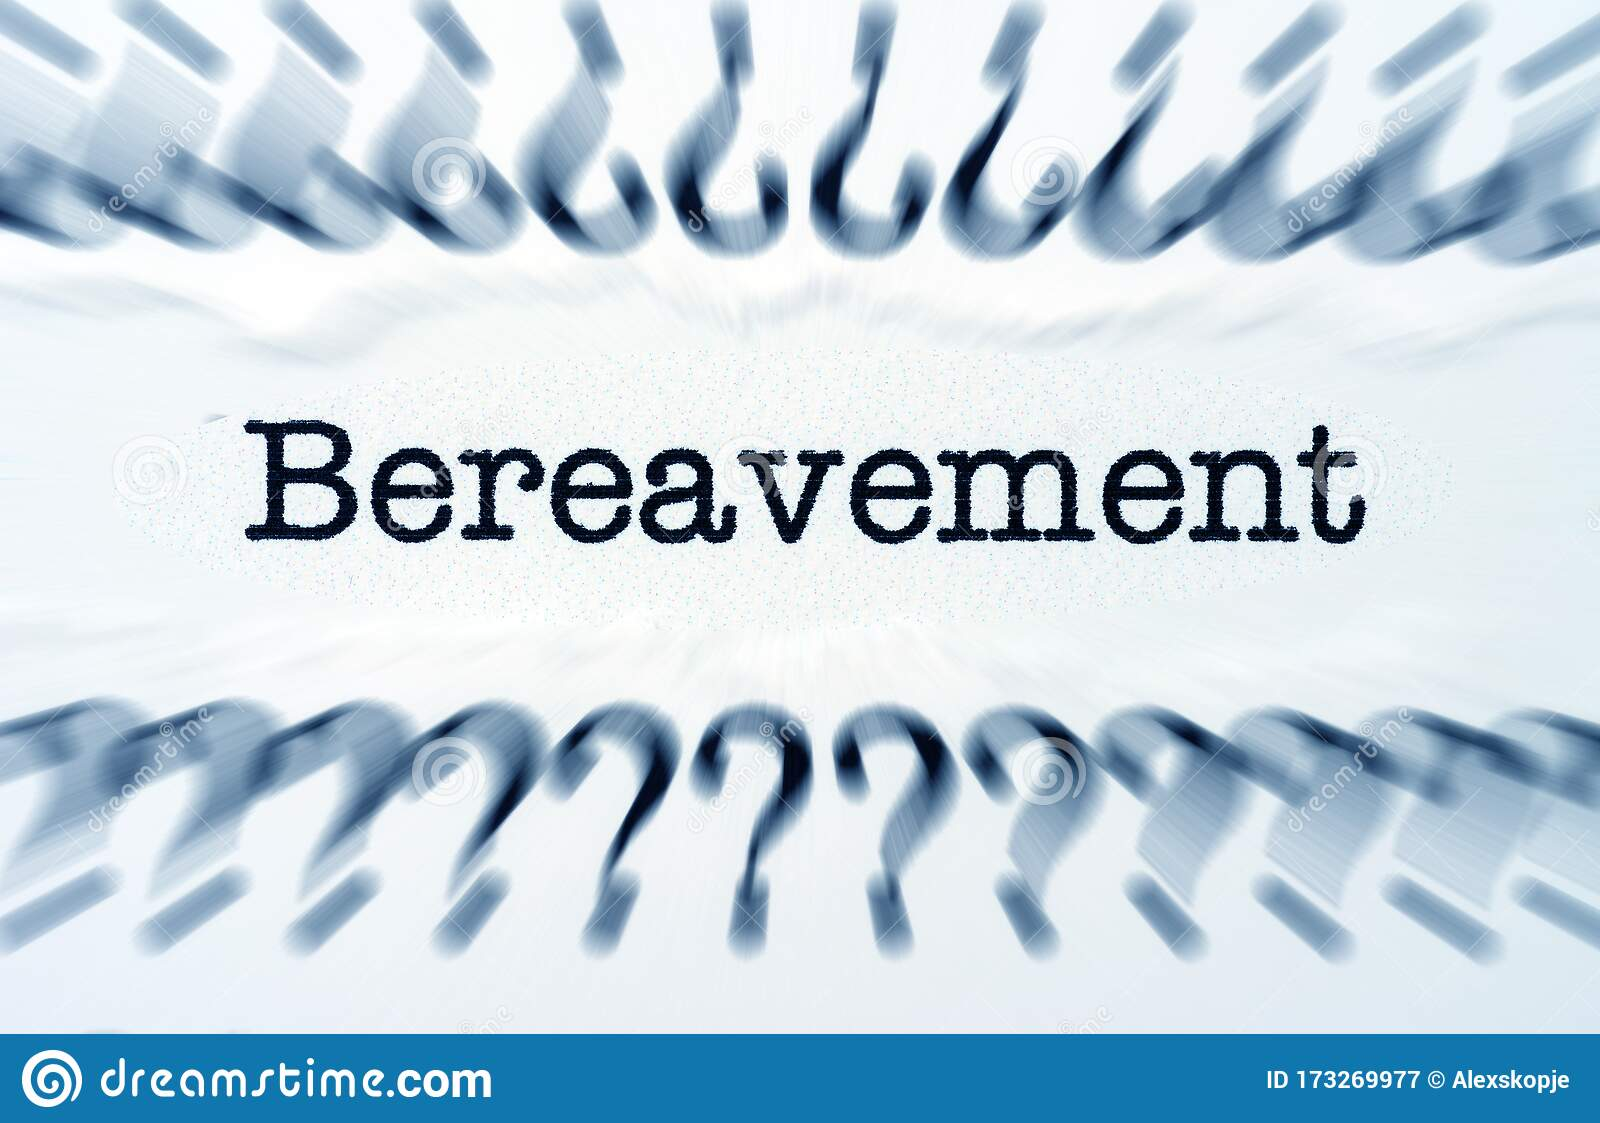 bereavement-close-up-bereavement-173269977.jpg?profile=RESIZE_400x